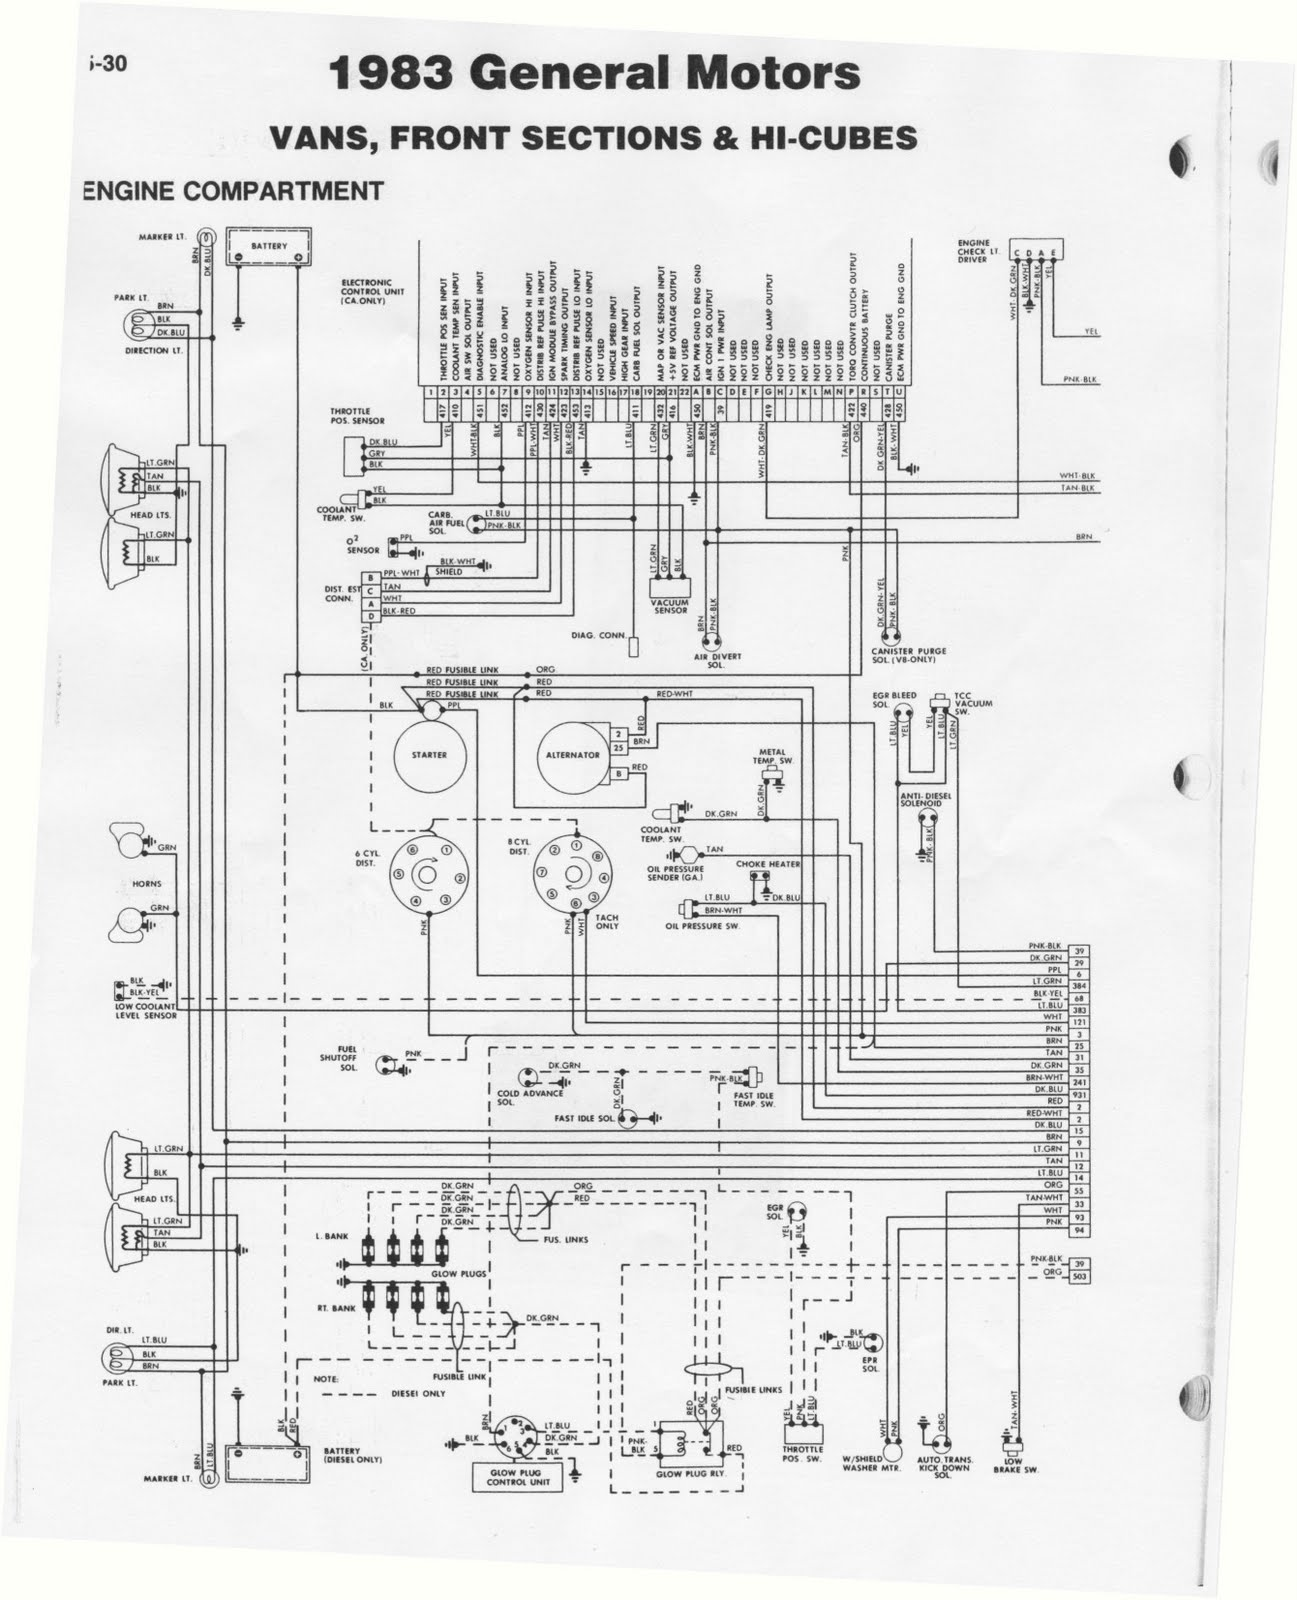 winnebago chieftain wiring diagrams tecumseh 6 5 hp carburetor diagram 1989